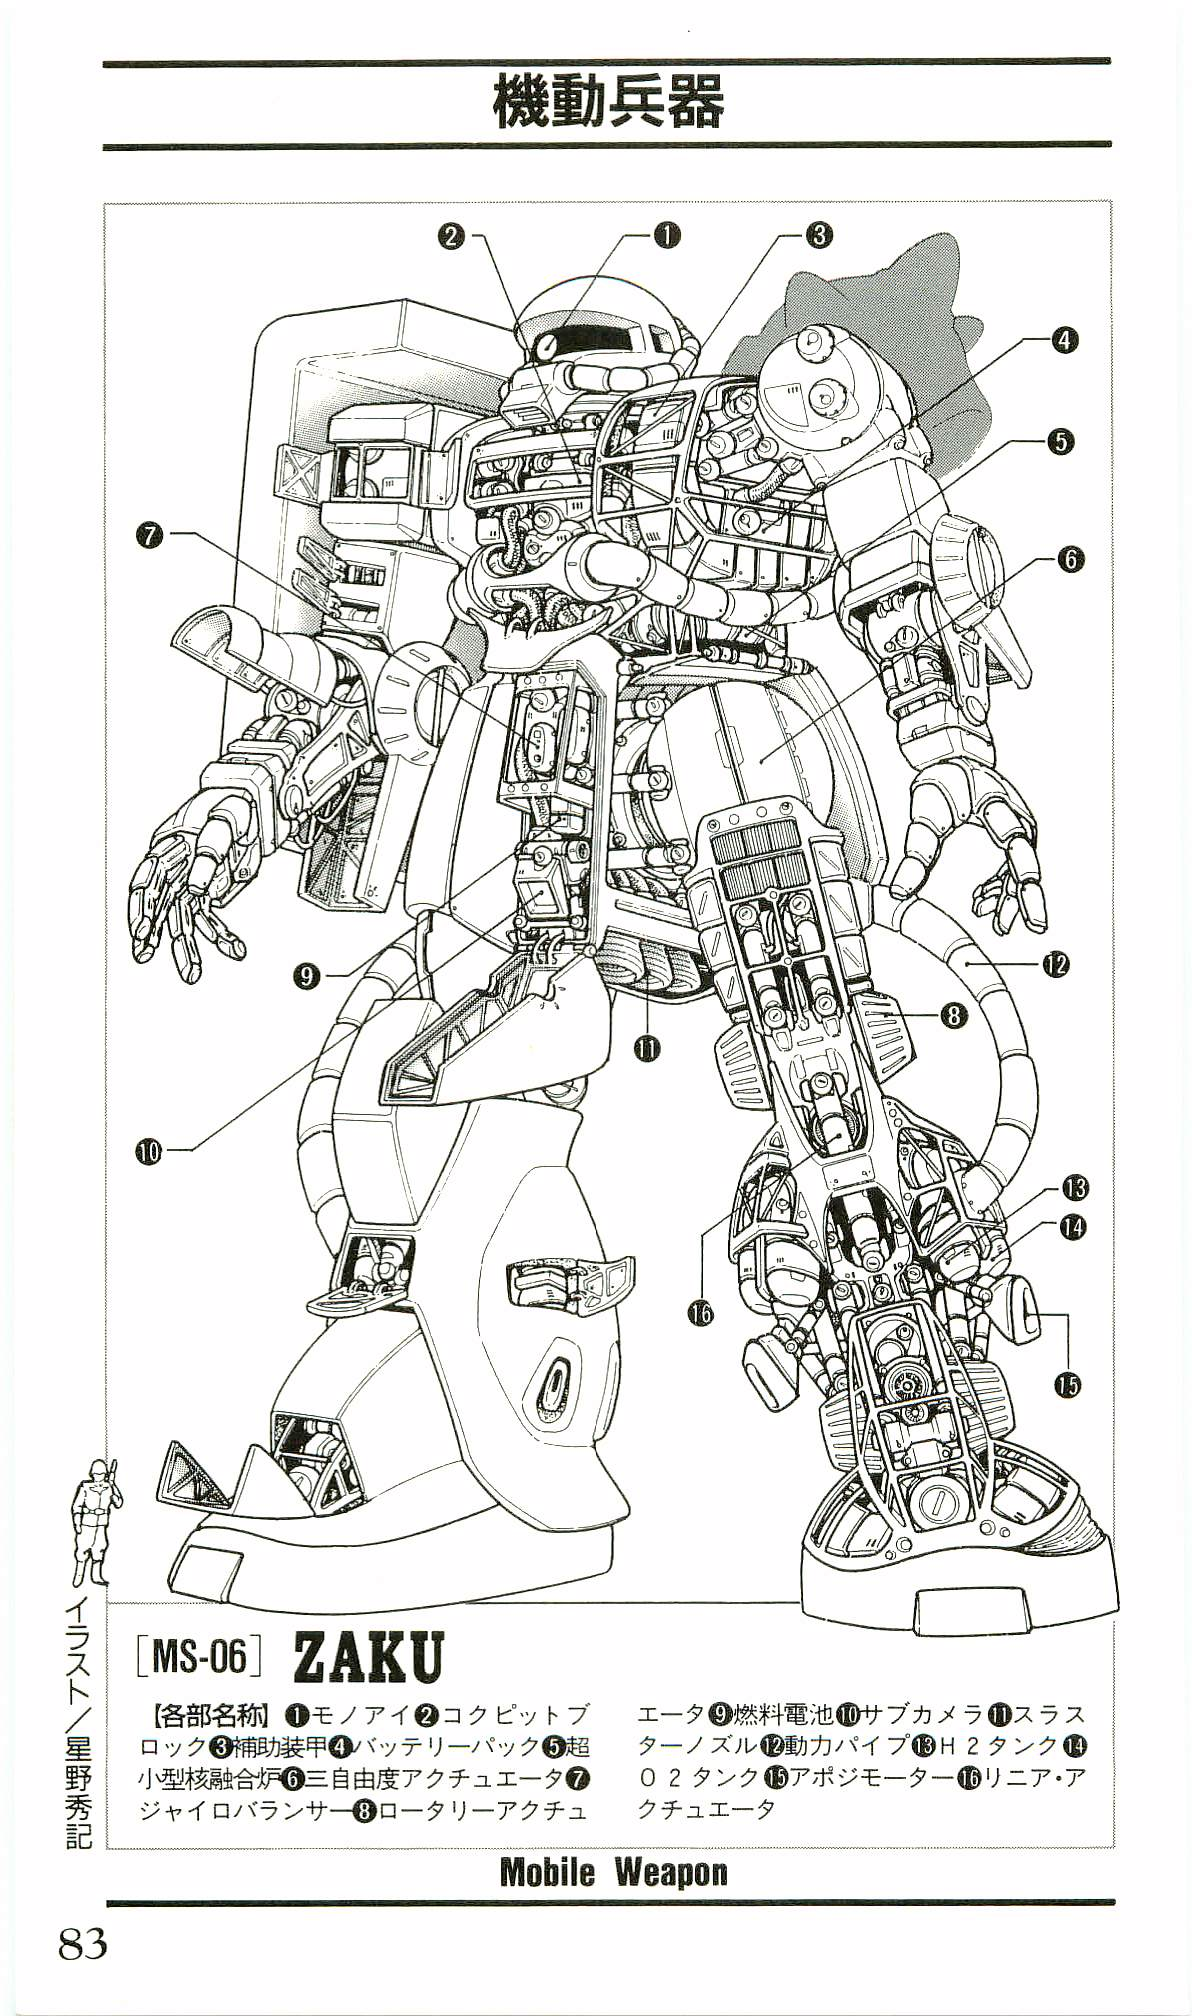 Moving The Arms Of A Mobile Suit